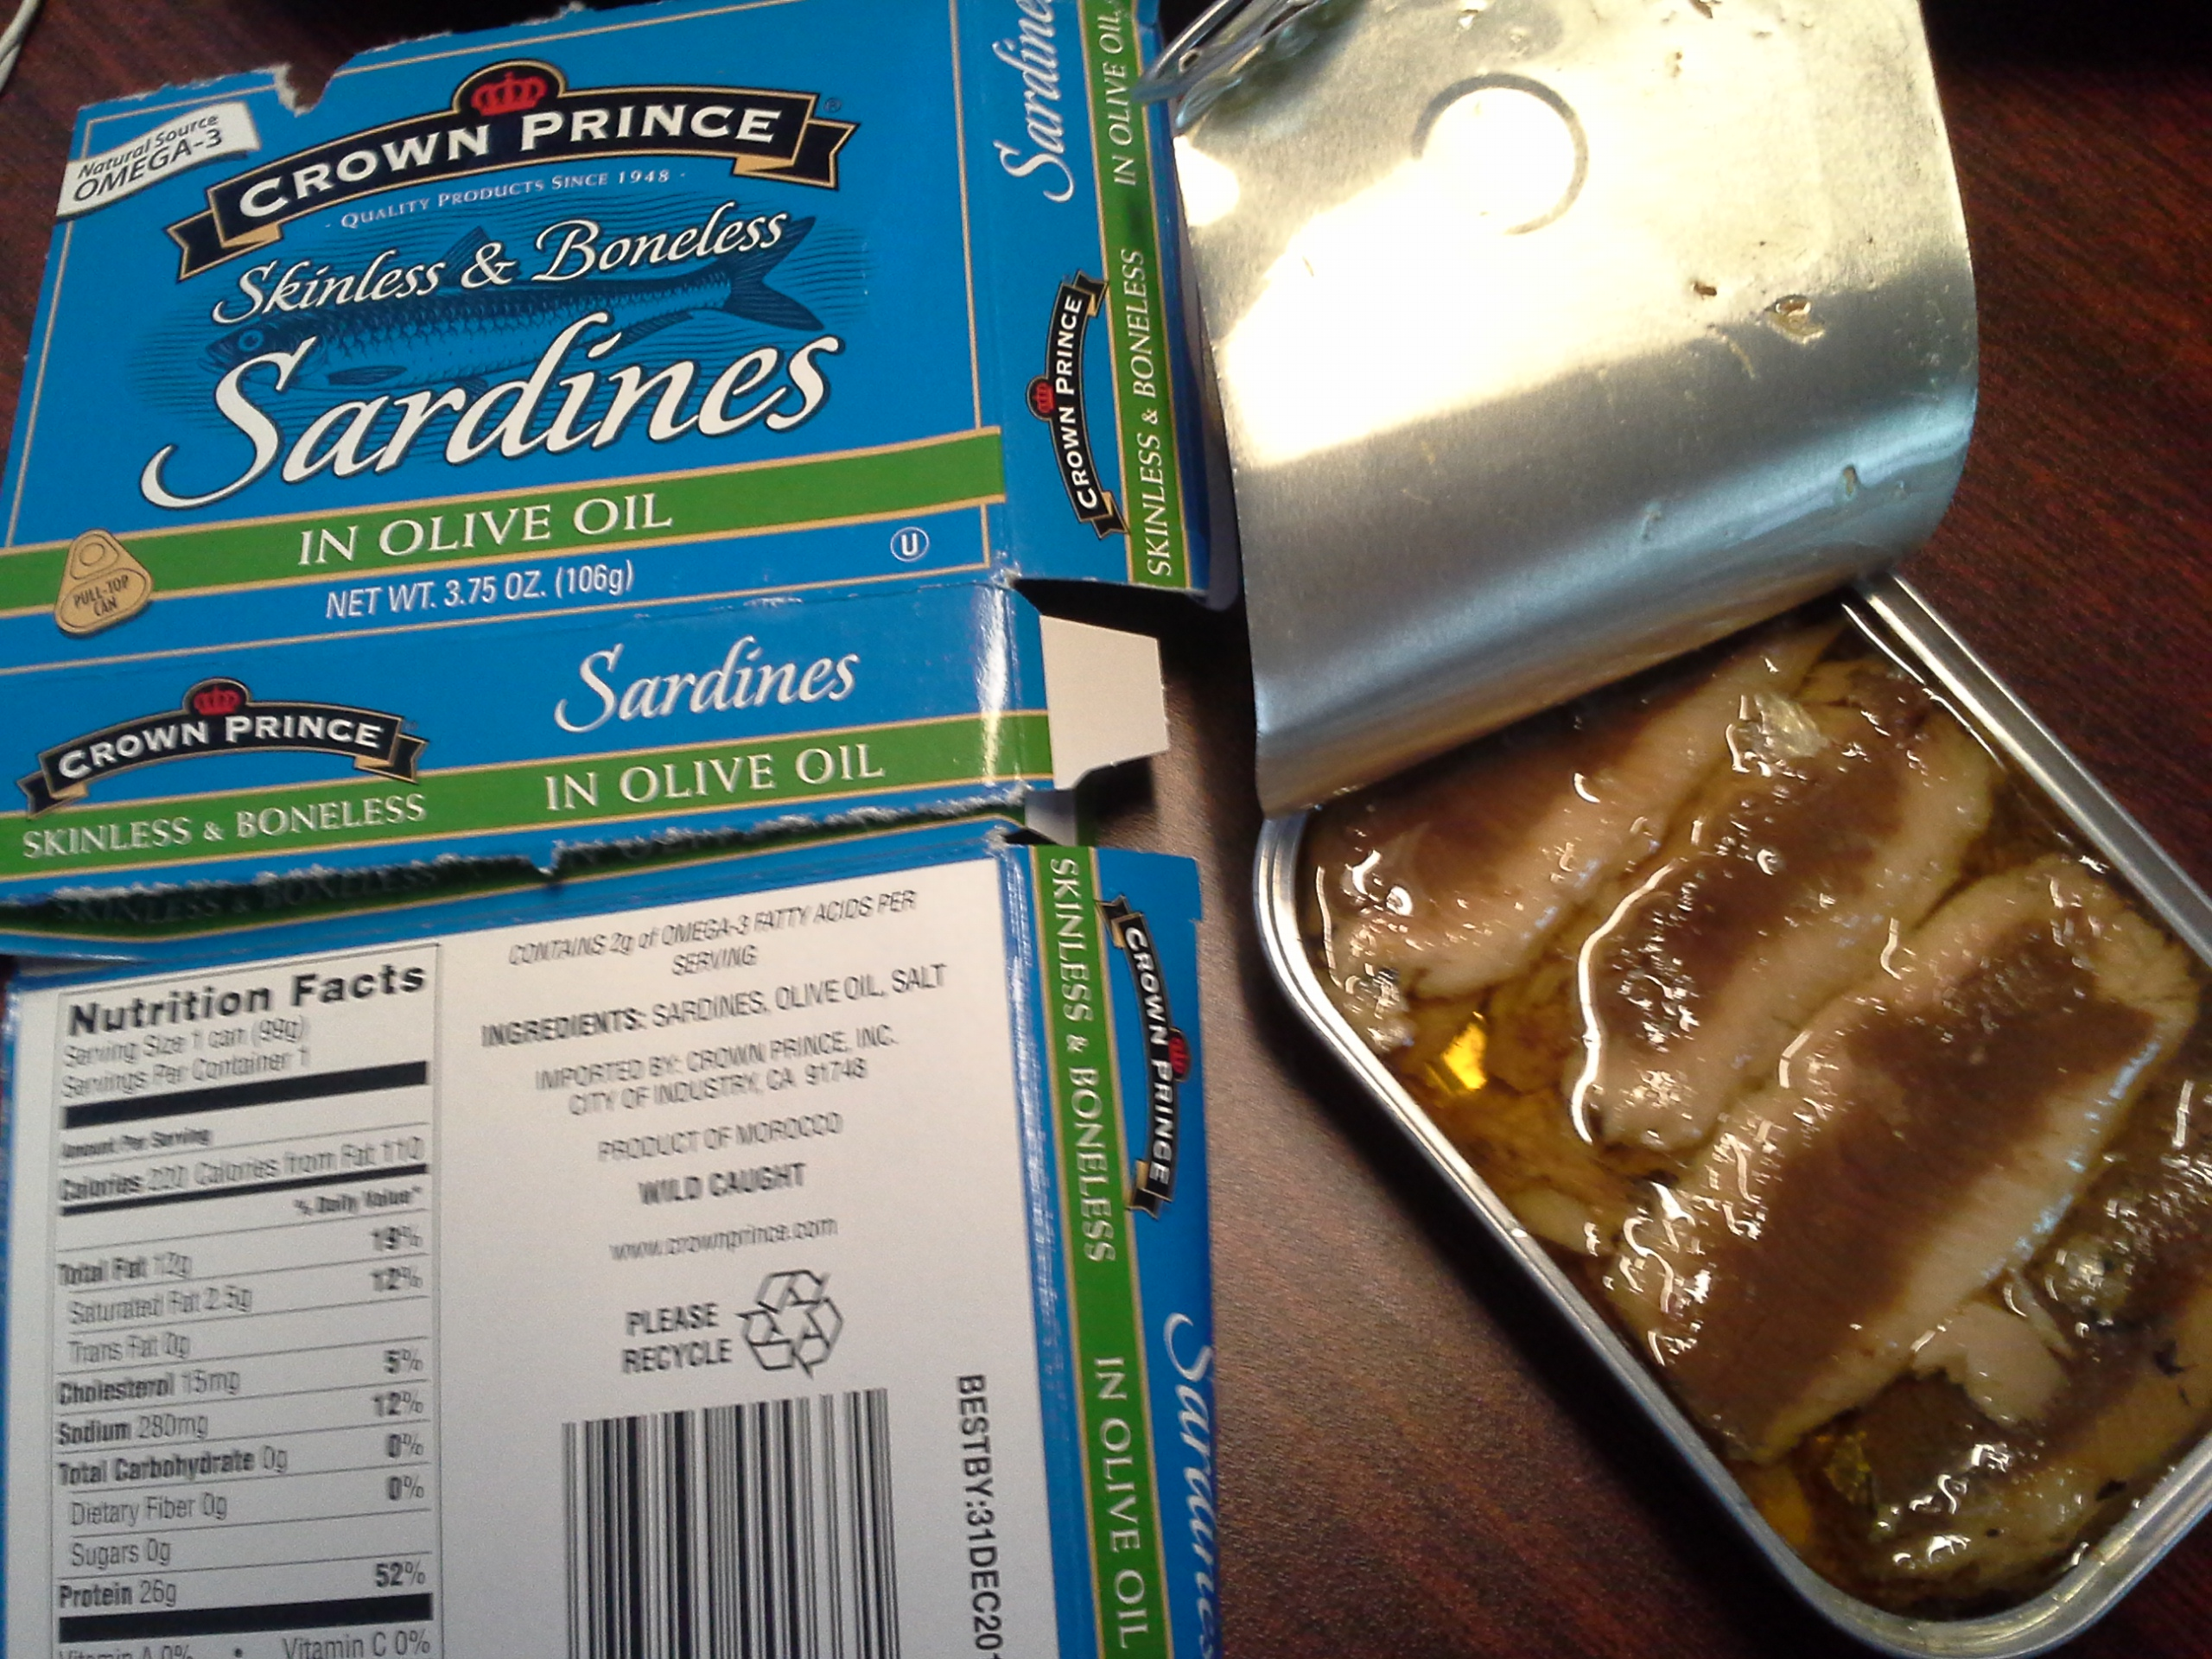 Lunch: 1:10 p.m. | 3.75 oz. sardines in olive oil